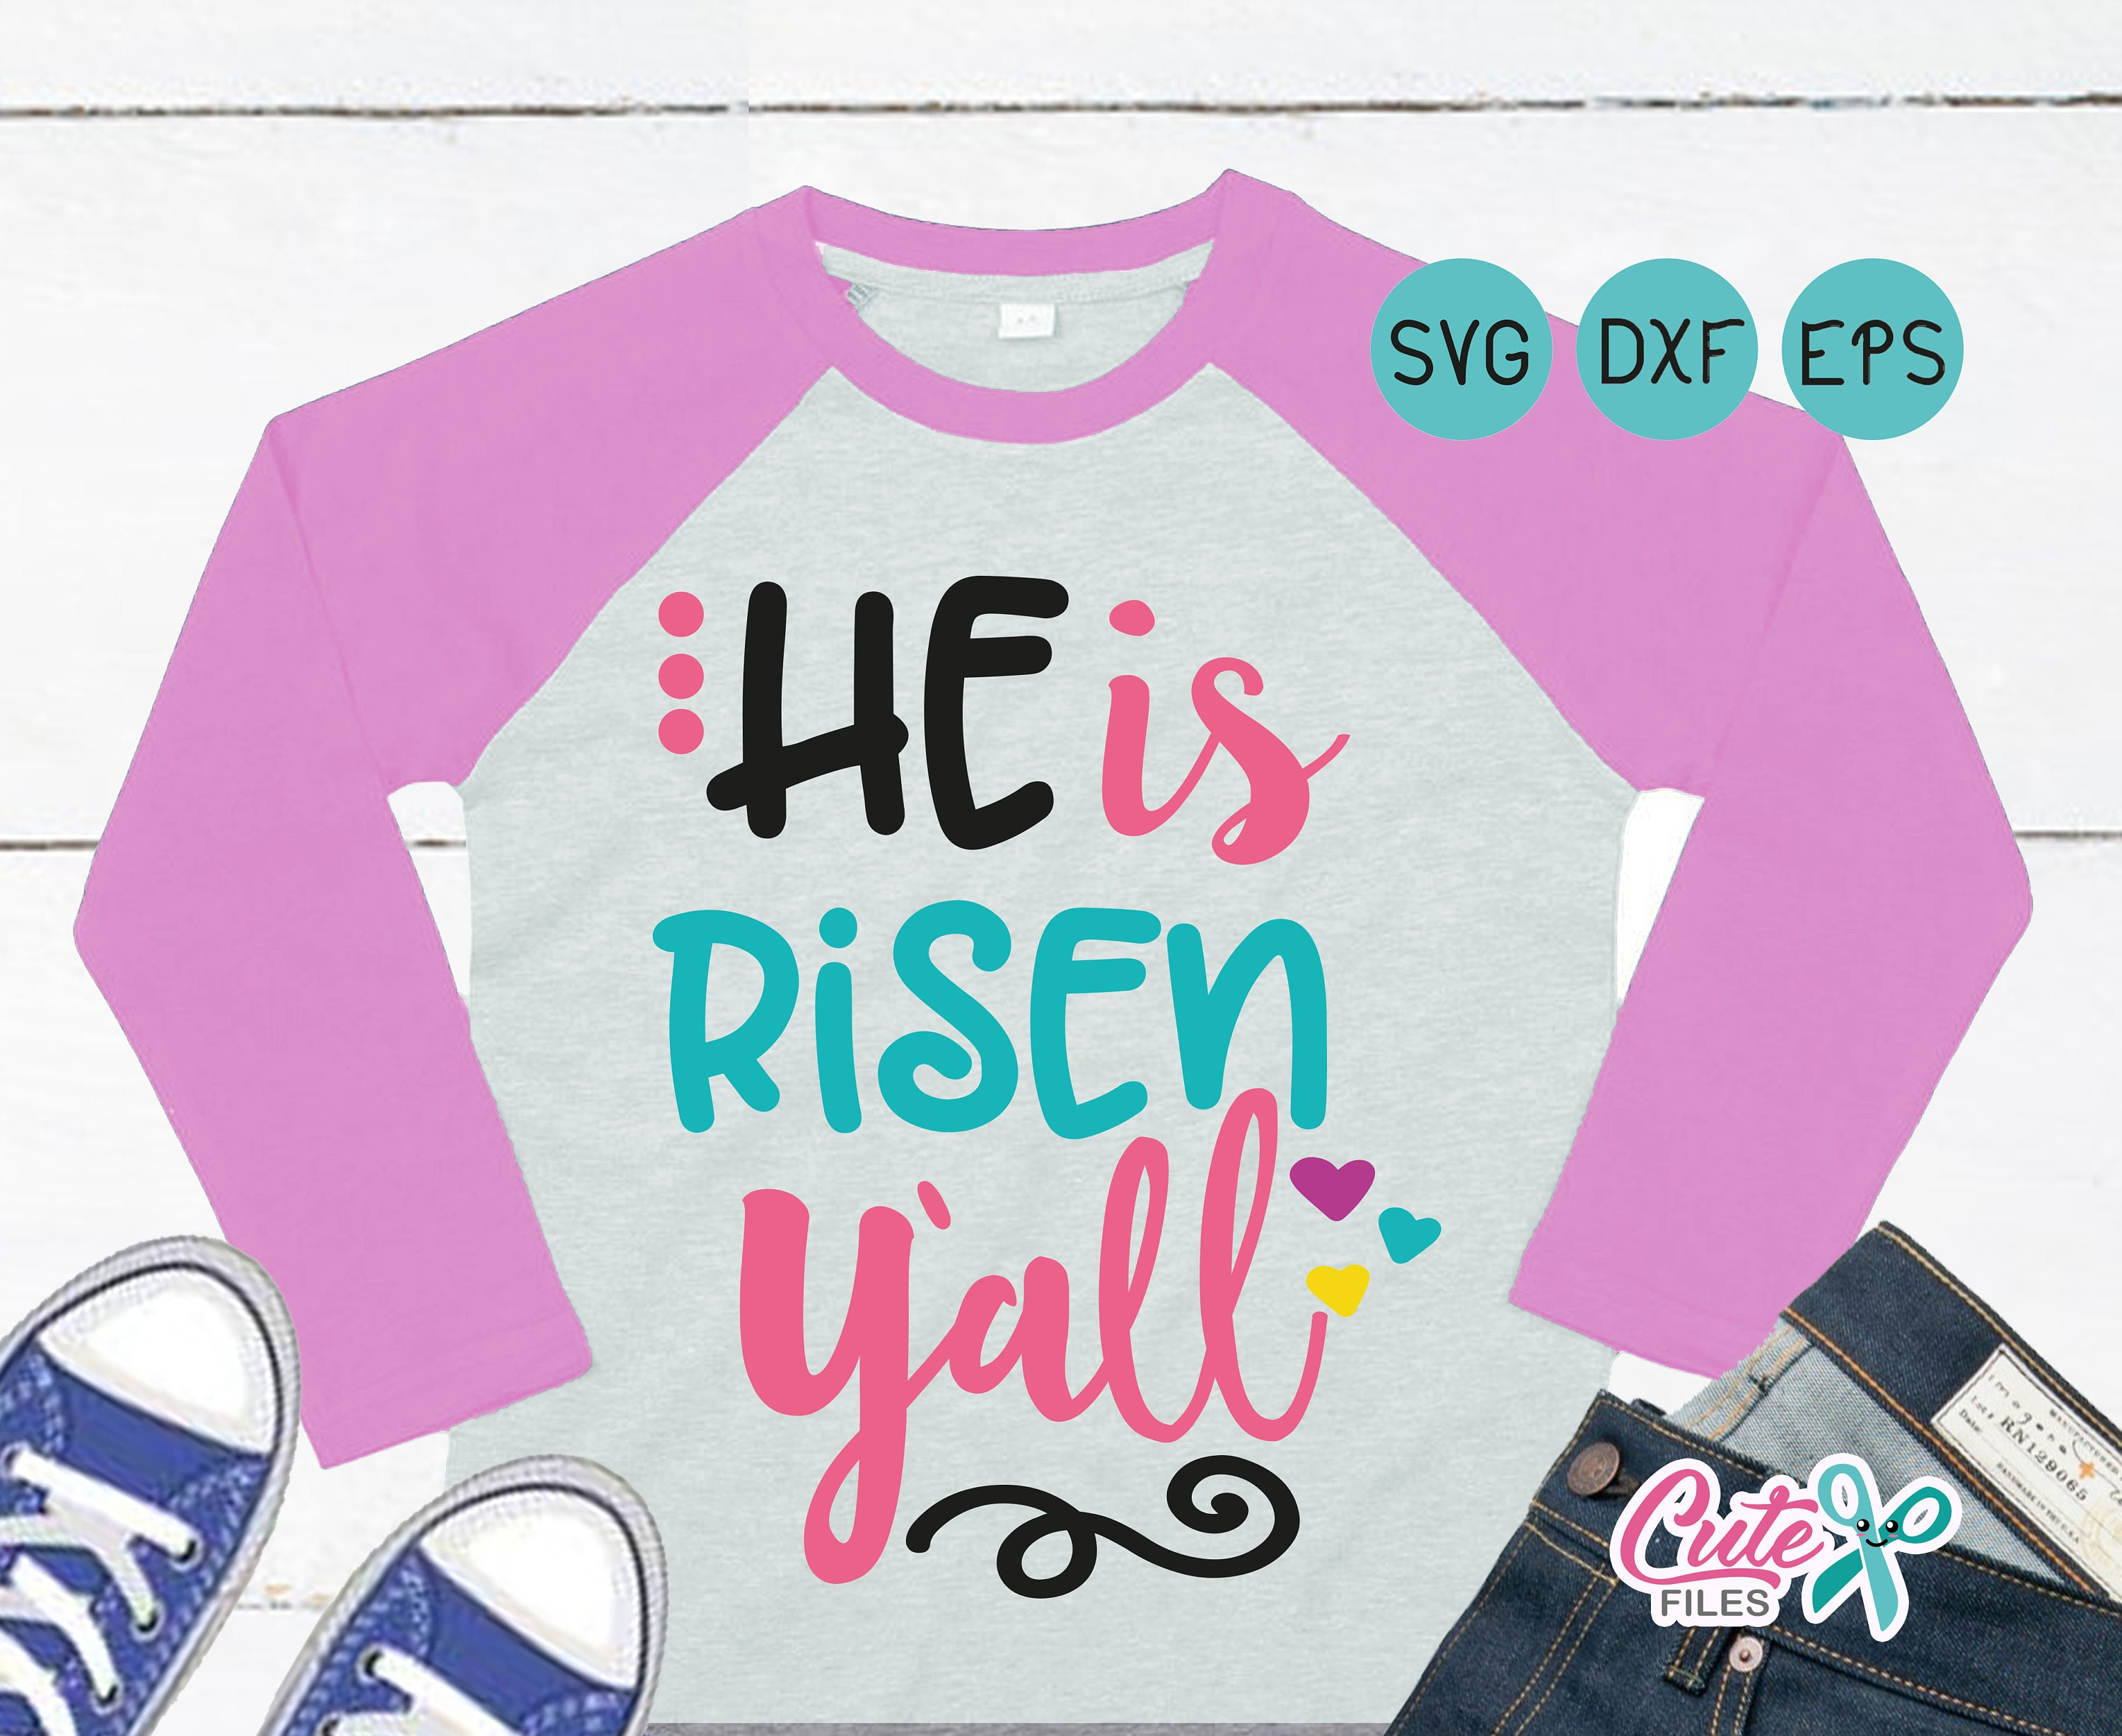 He is Risen yall svg Girly Easter saying Bible Easter svg | Etsy